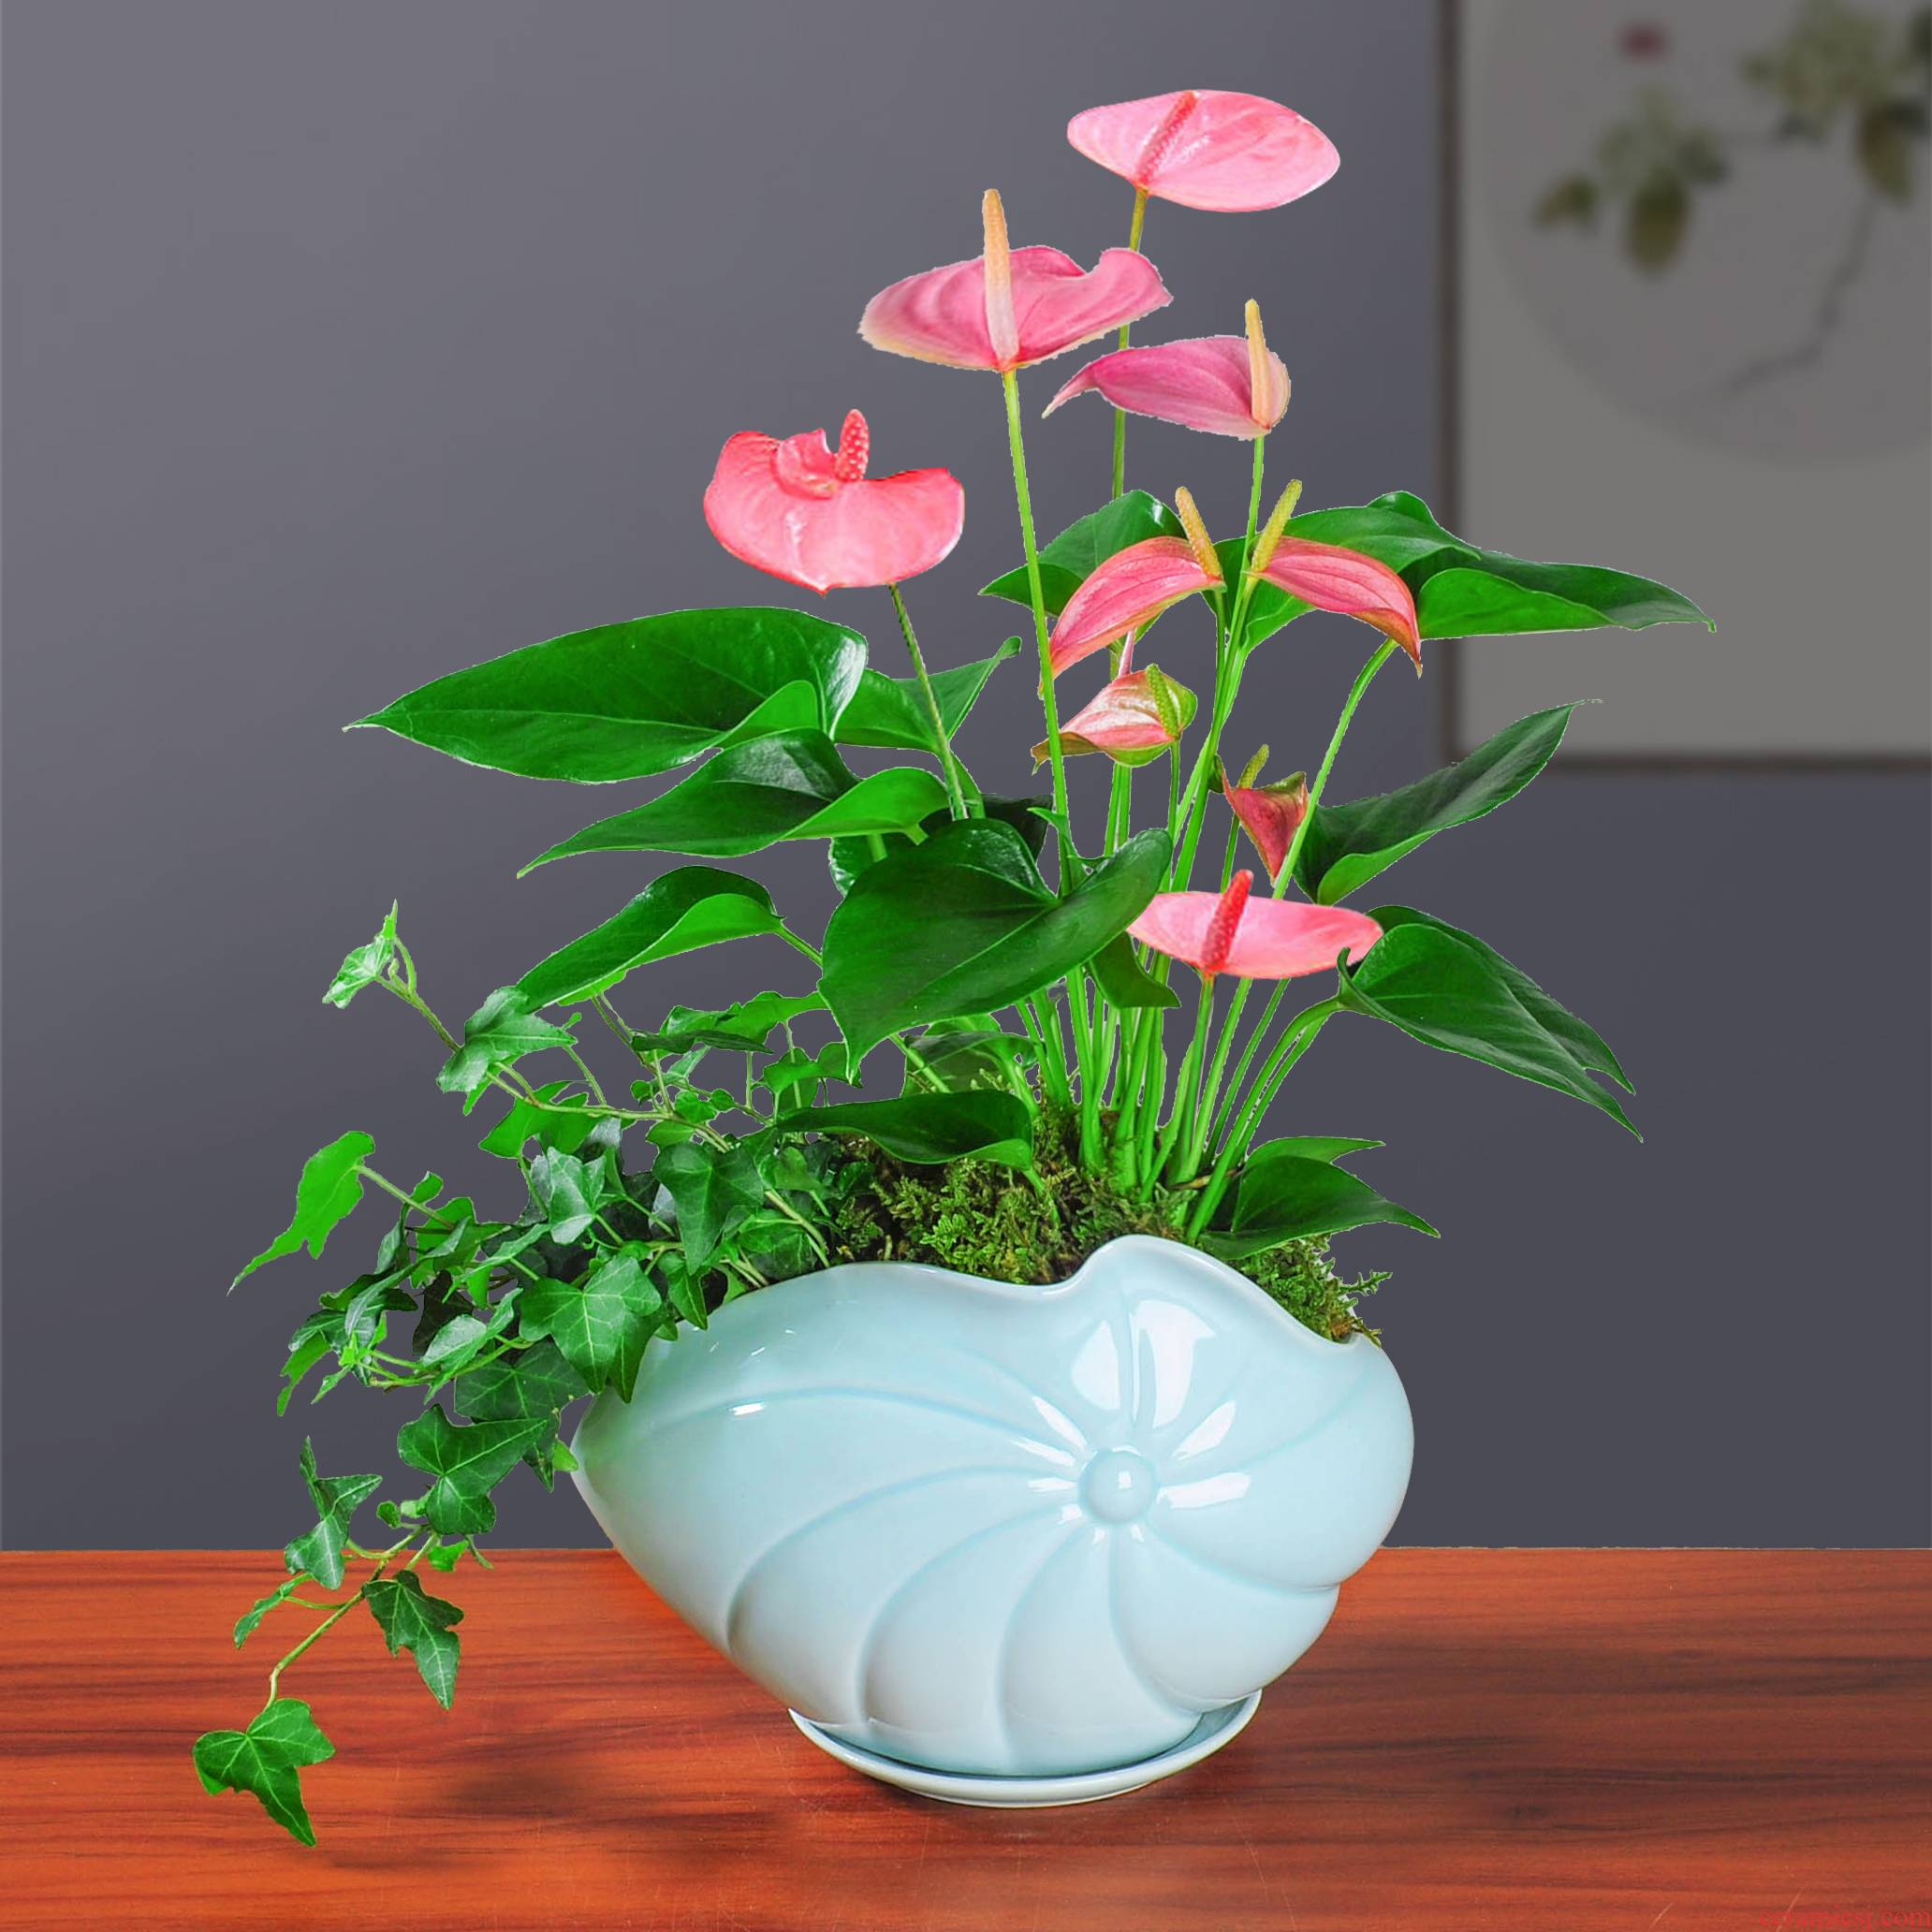 Creative ceramic celadon pot fleshy mage with tray was contracted and other green the plants butterfly orchid Creative move